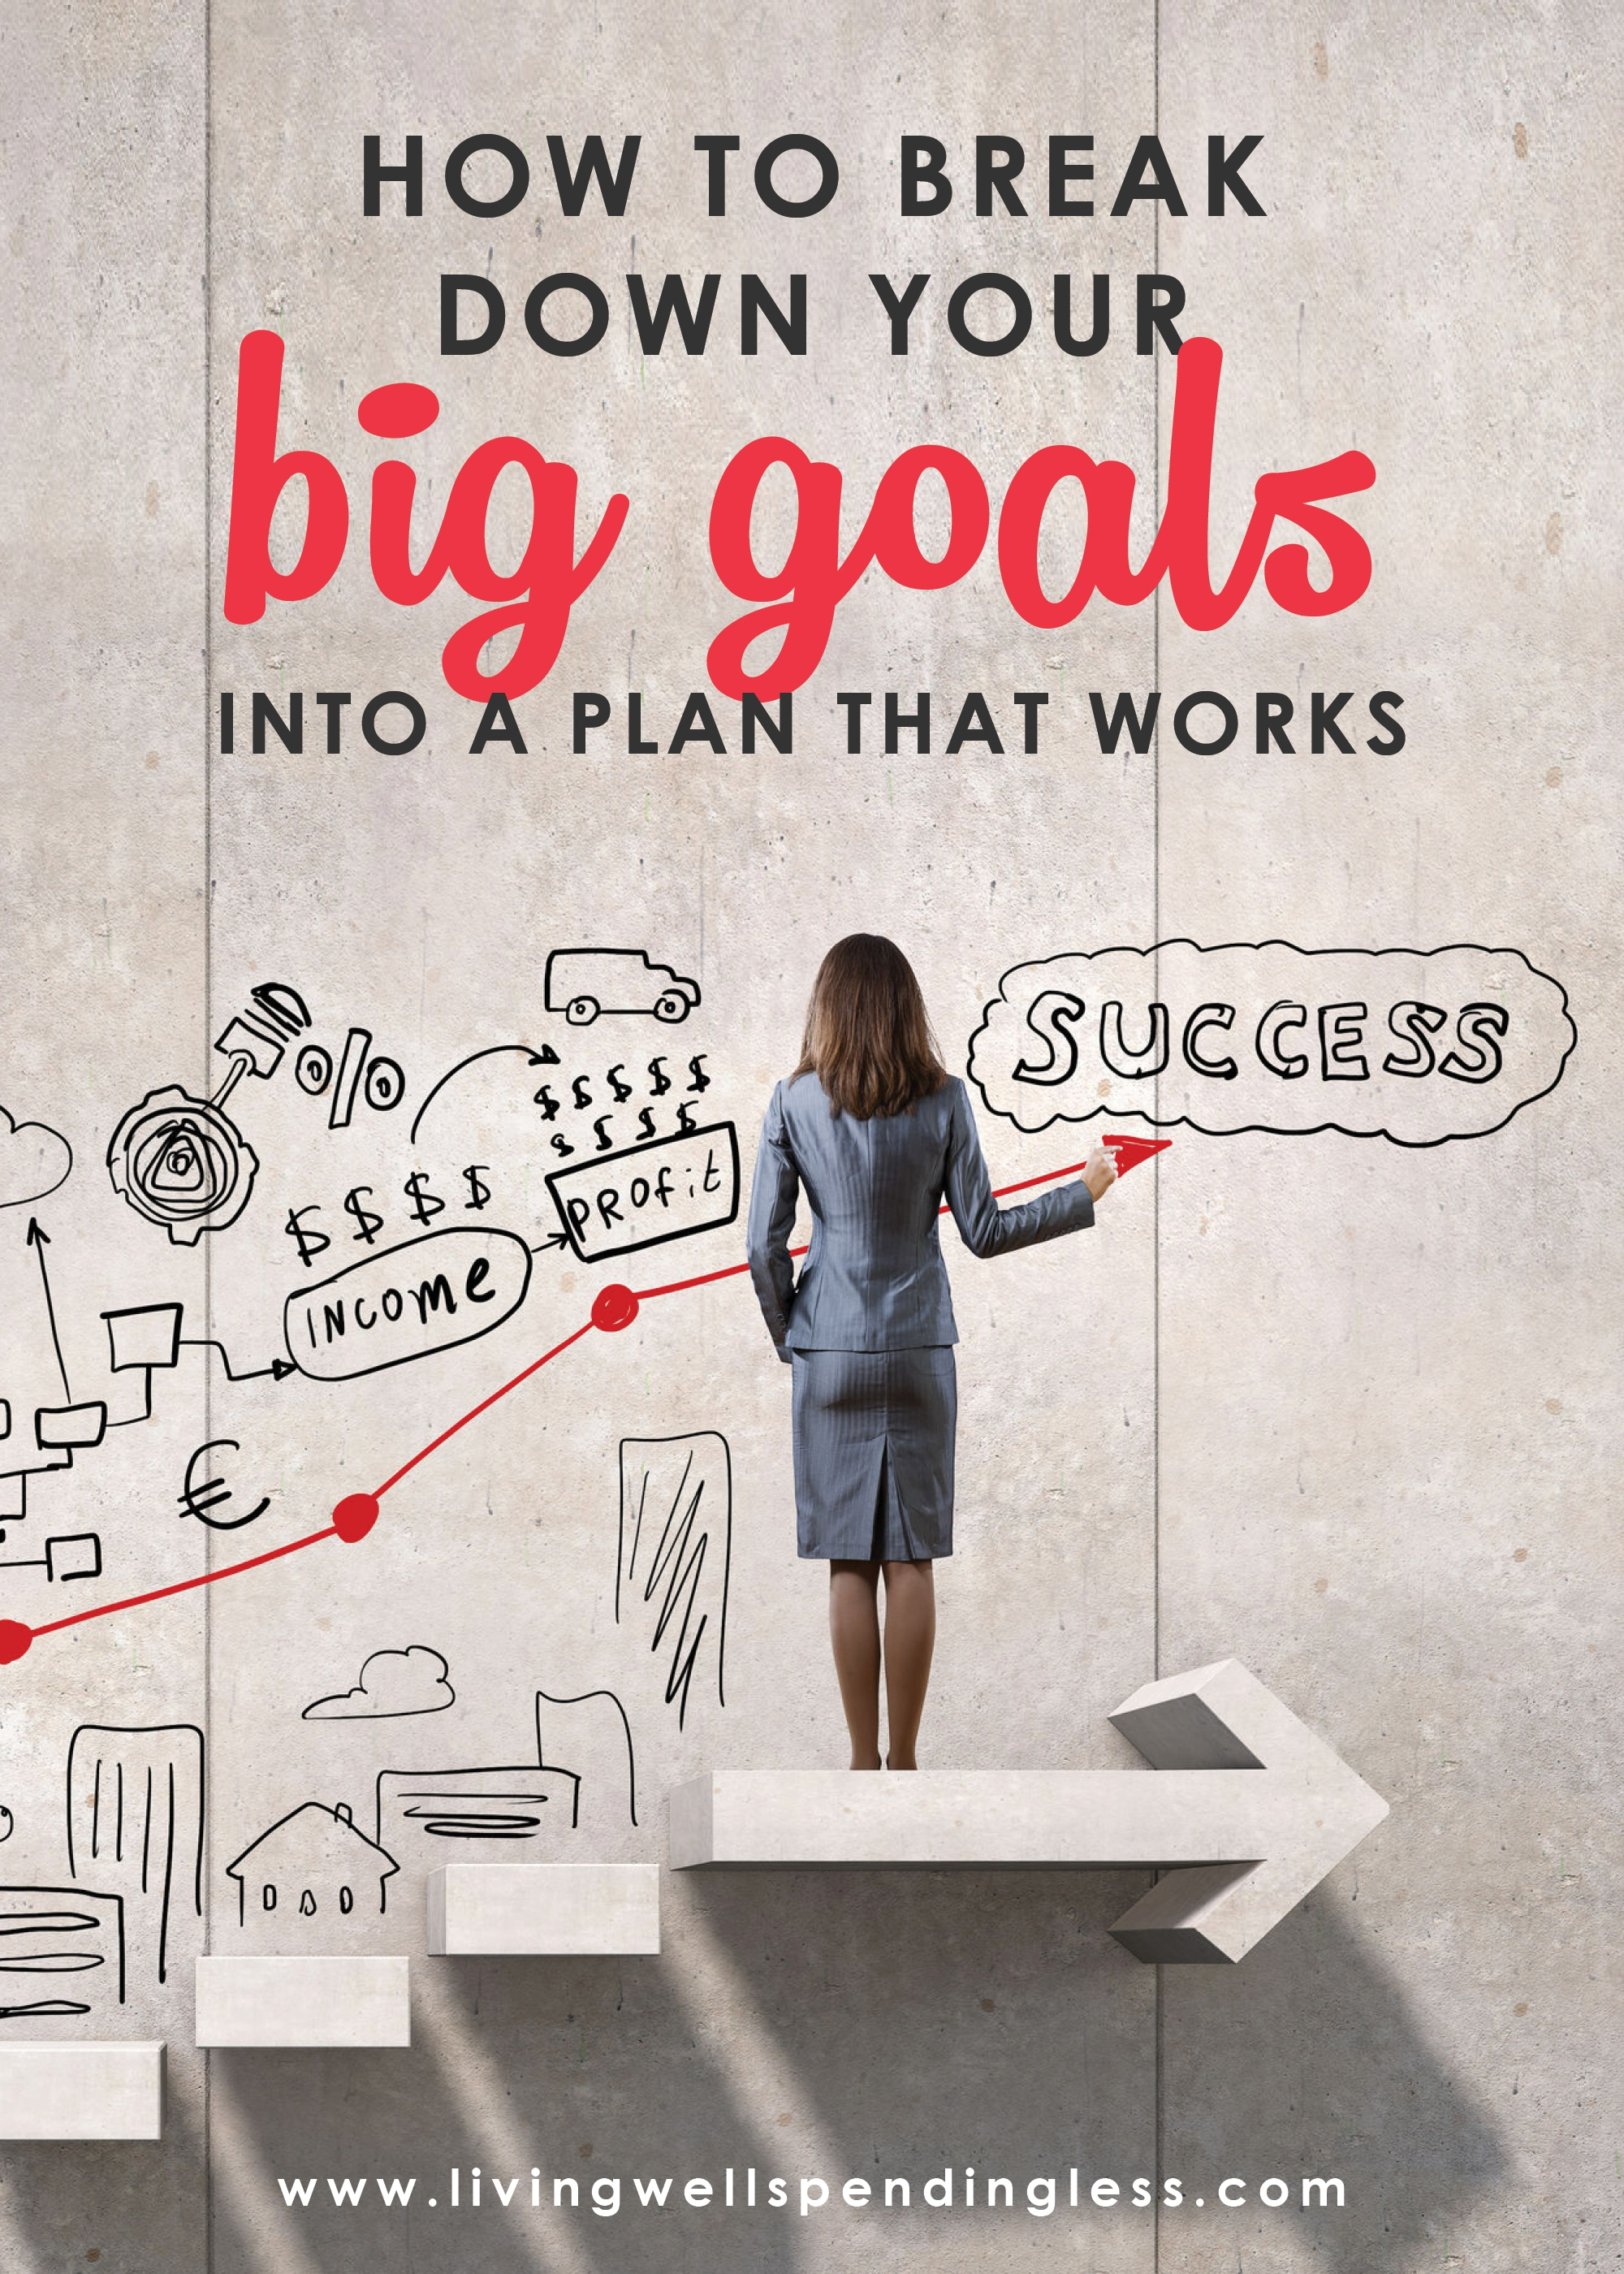 Need help accomplishing your big goals? These tips will help you create a plan that works to help you reach your upmost potential and find success!